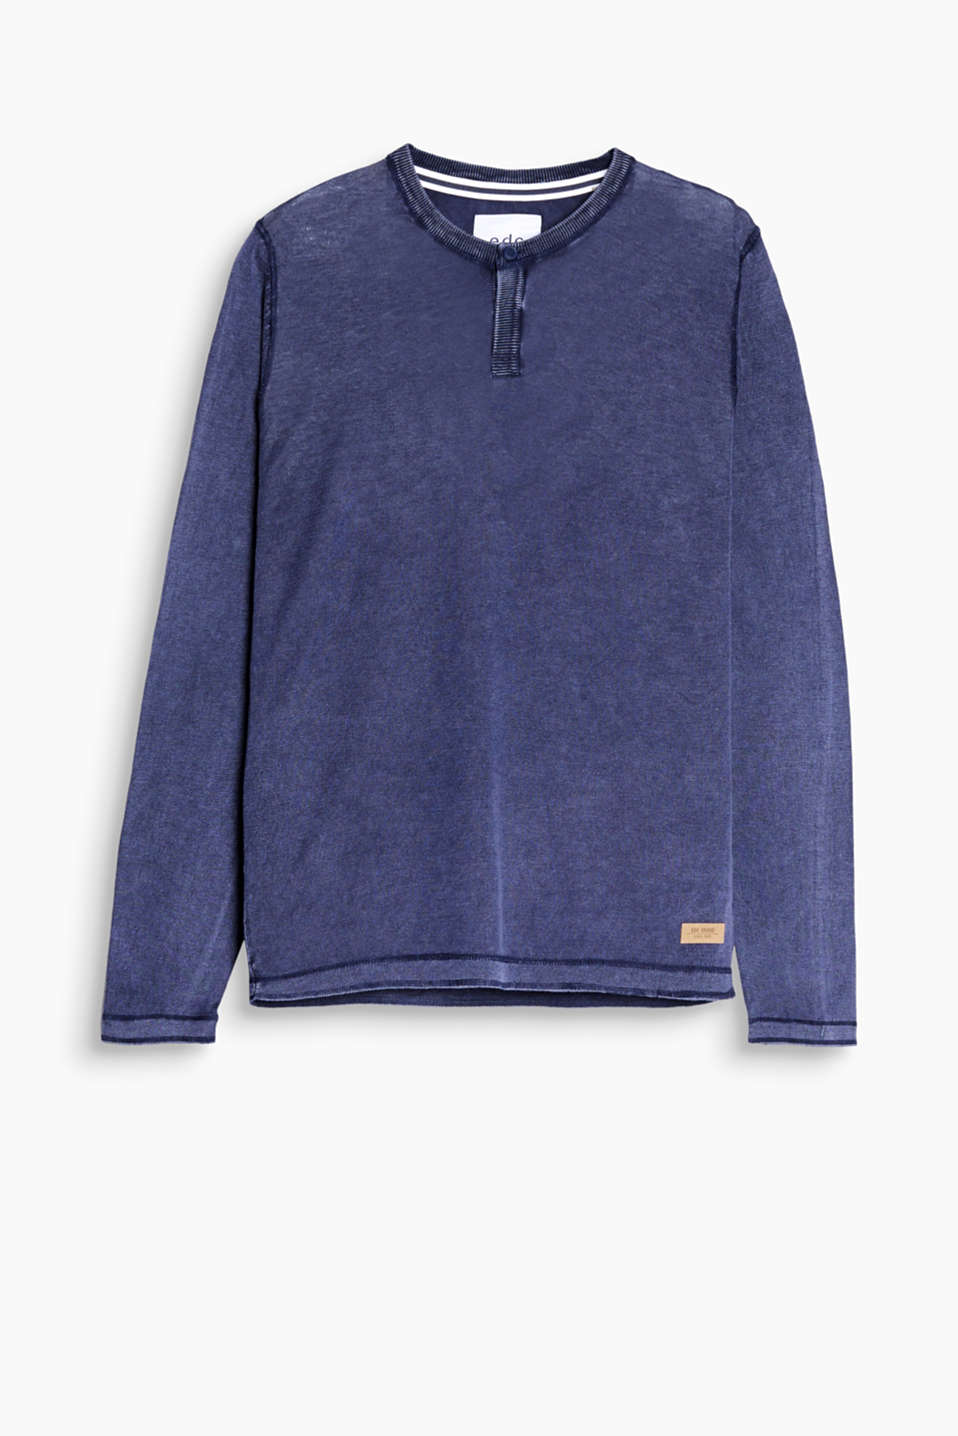 Pure cotton, long sleeve Henley in a cool, trendy wash with ribbed edges